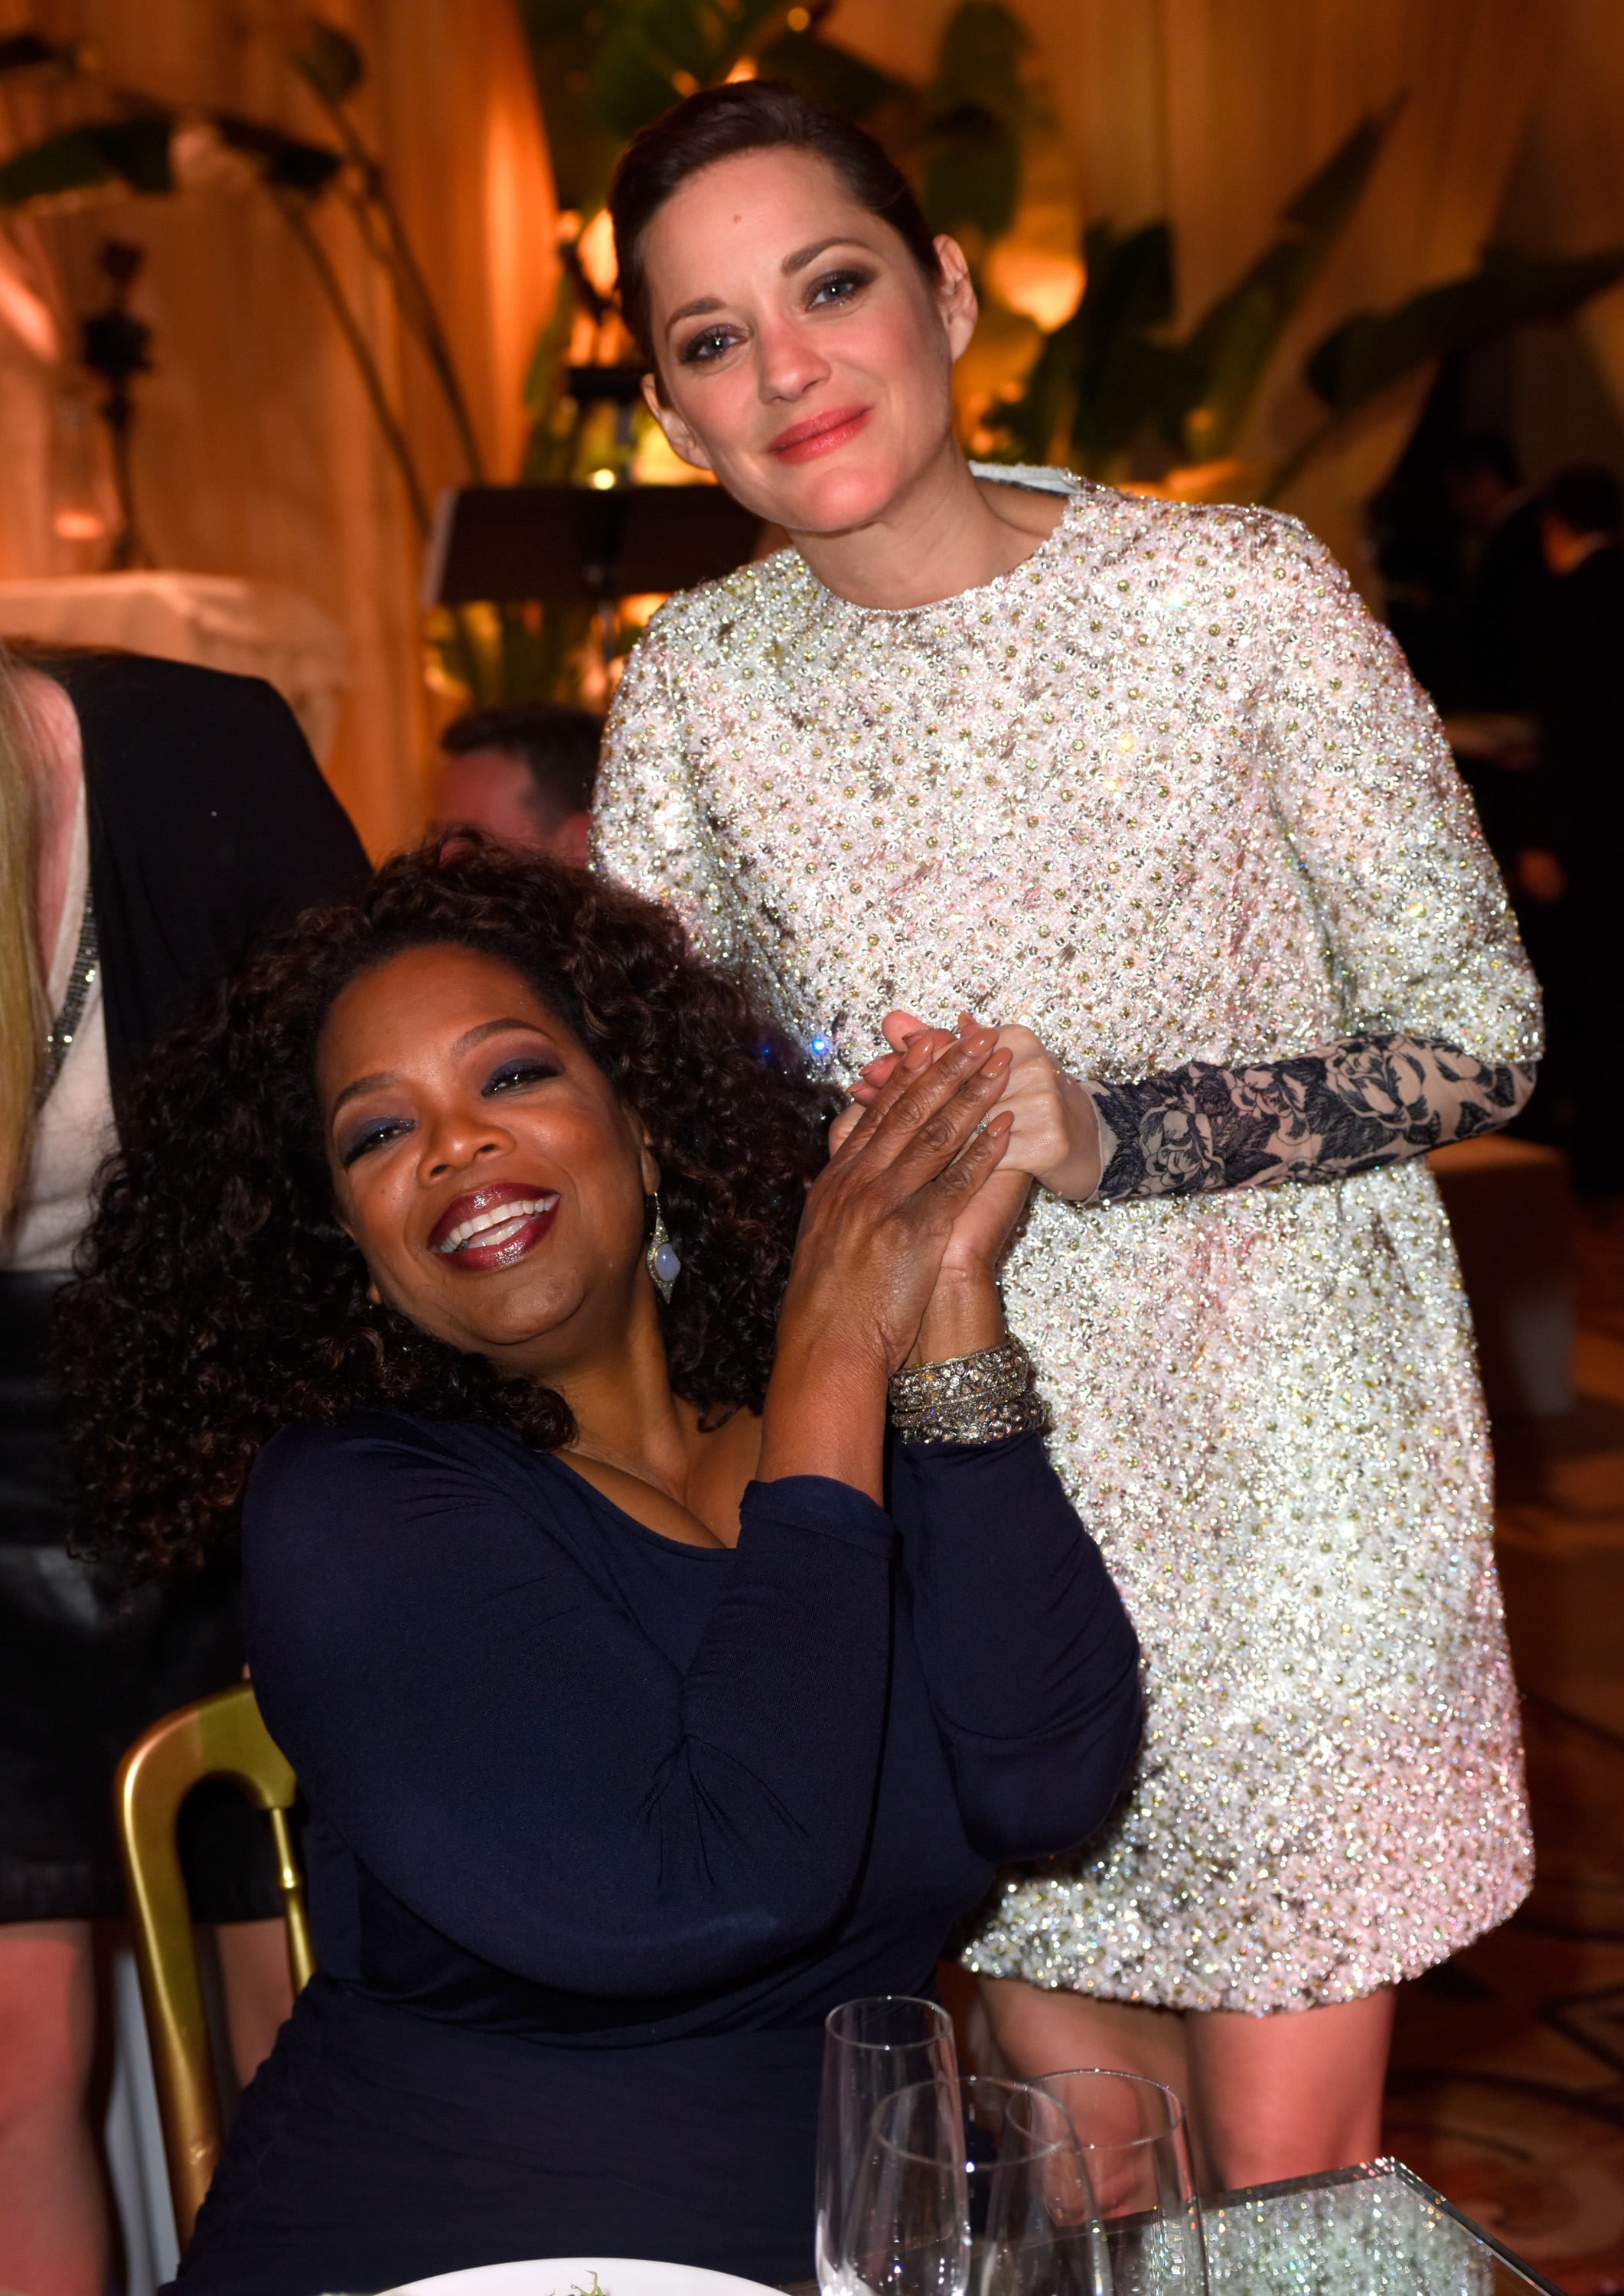 Oprah Winfrey and Marion Cotillard at The Weinstein Company's Academy Awards Nominees Dinner, hosted by Meiomi Wines on February 21, 2015 at The Montage in L.A.  (Charley Gallay/Getty Images)